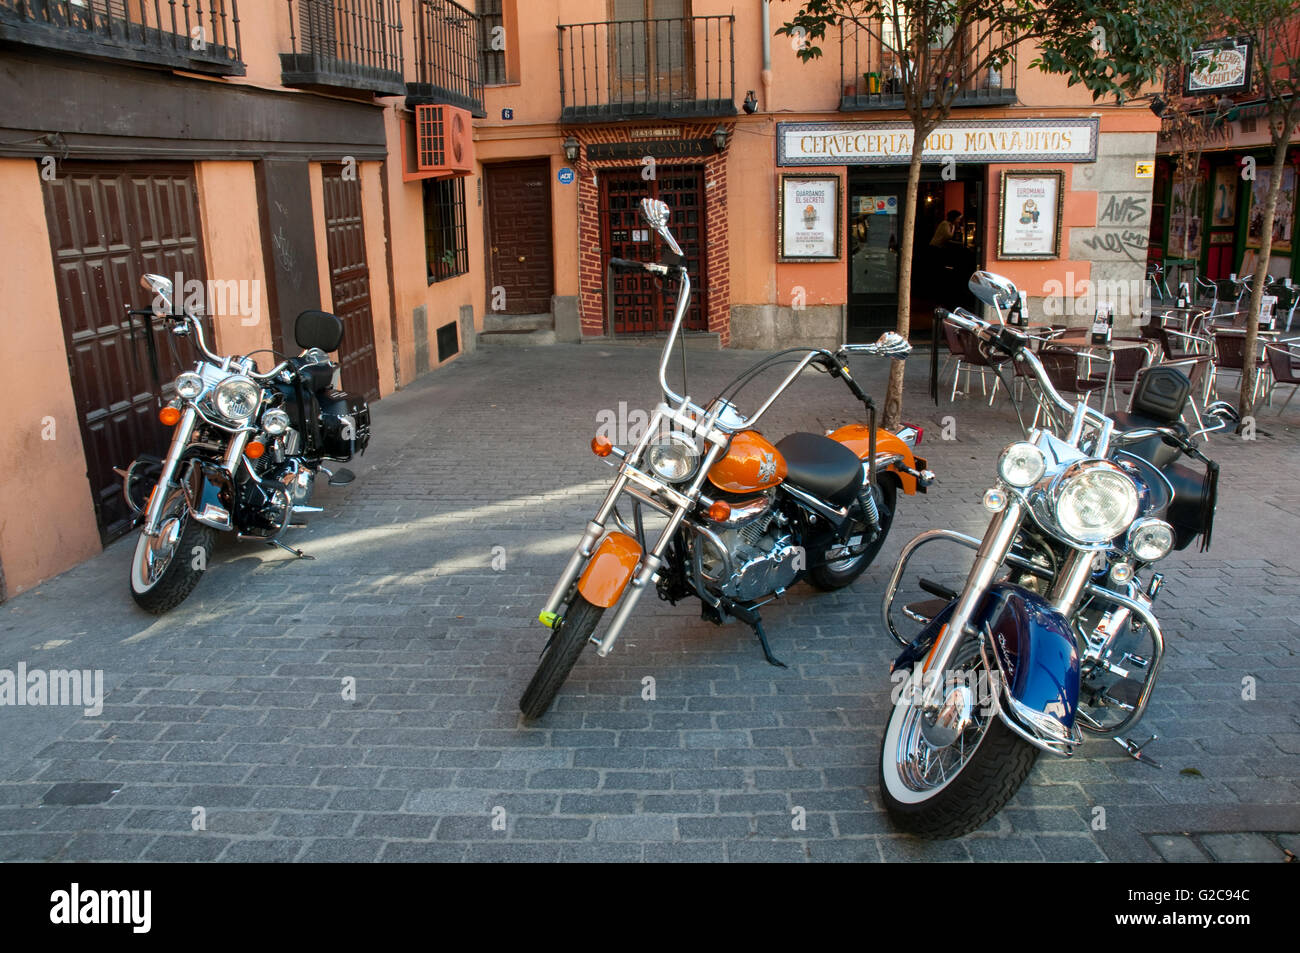 Three motorcycles. Puerta Cerrada square, Madrid, Spain. - Stock Image